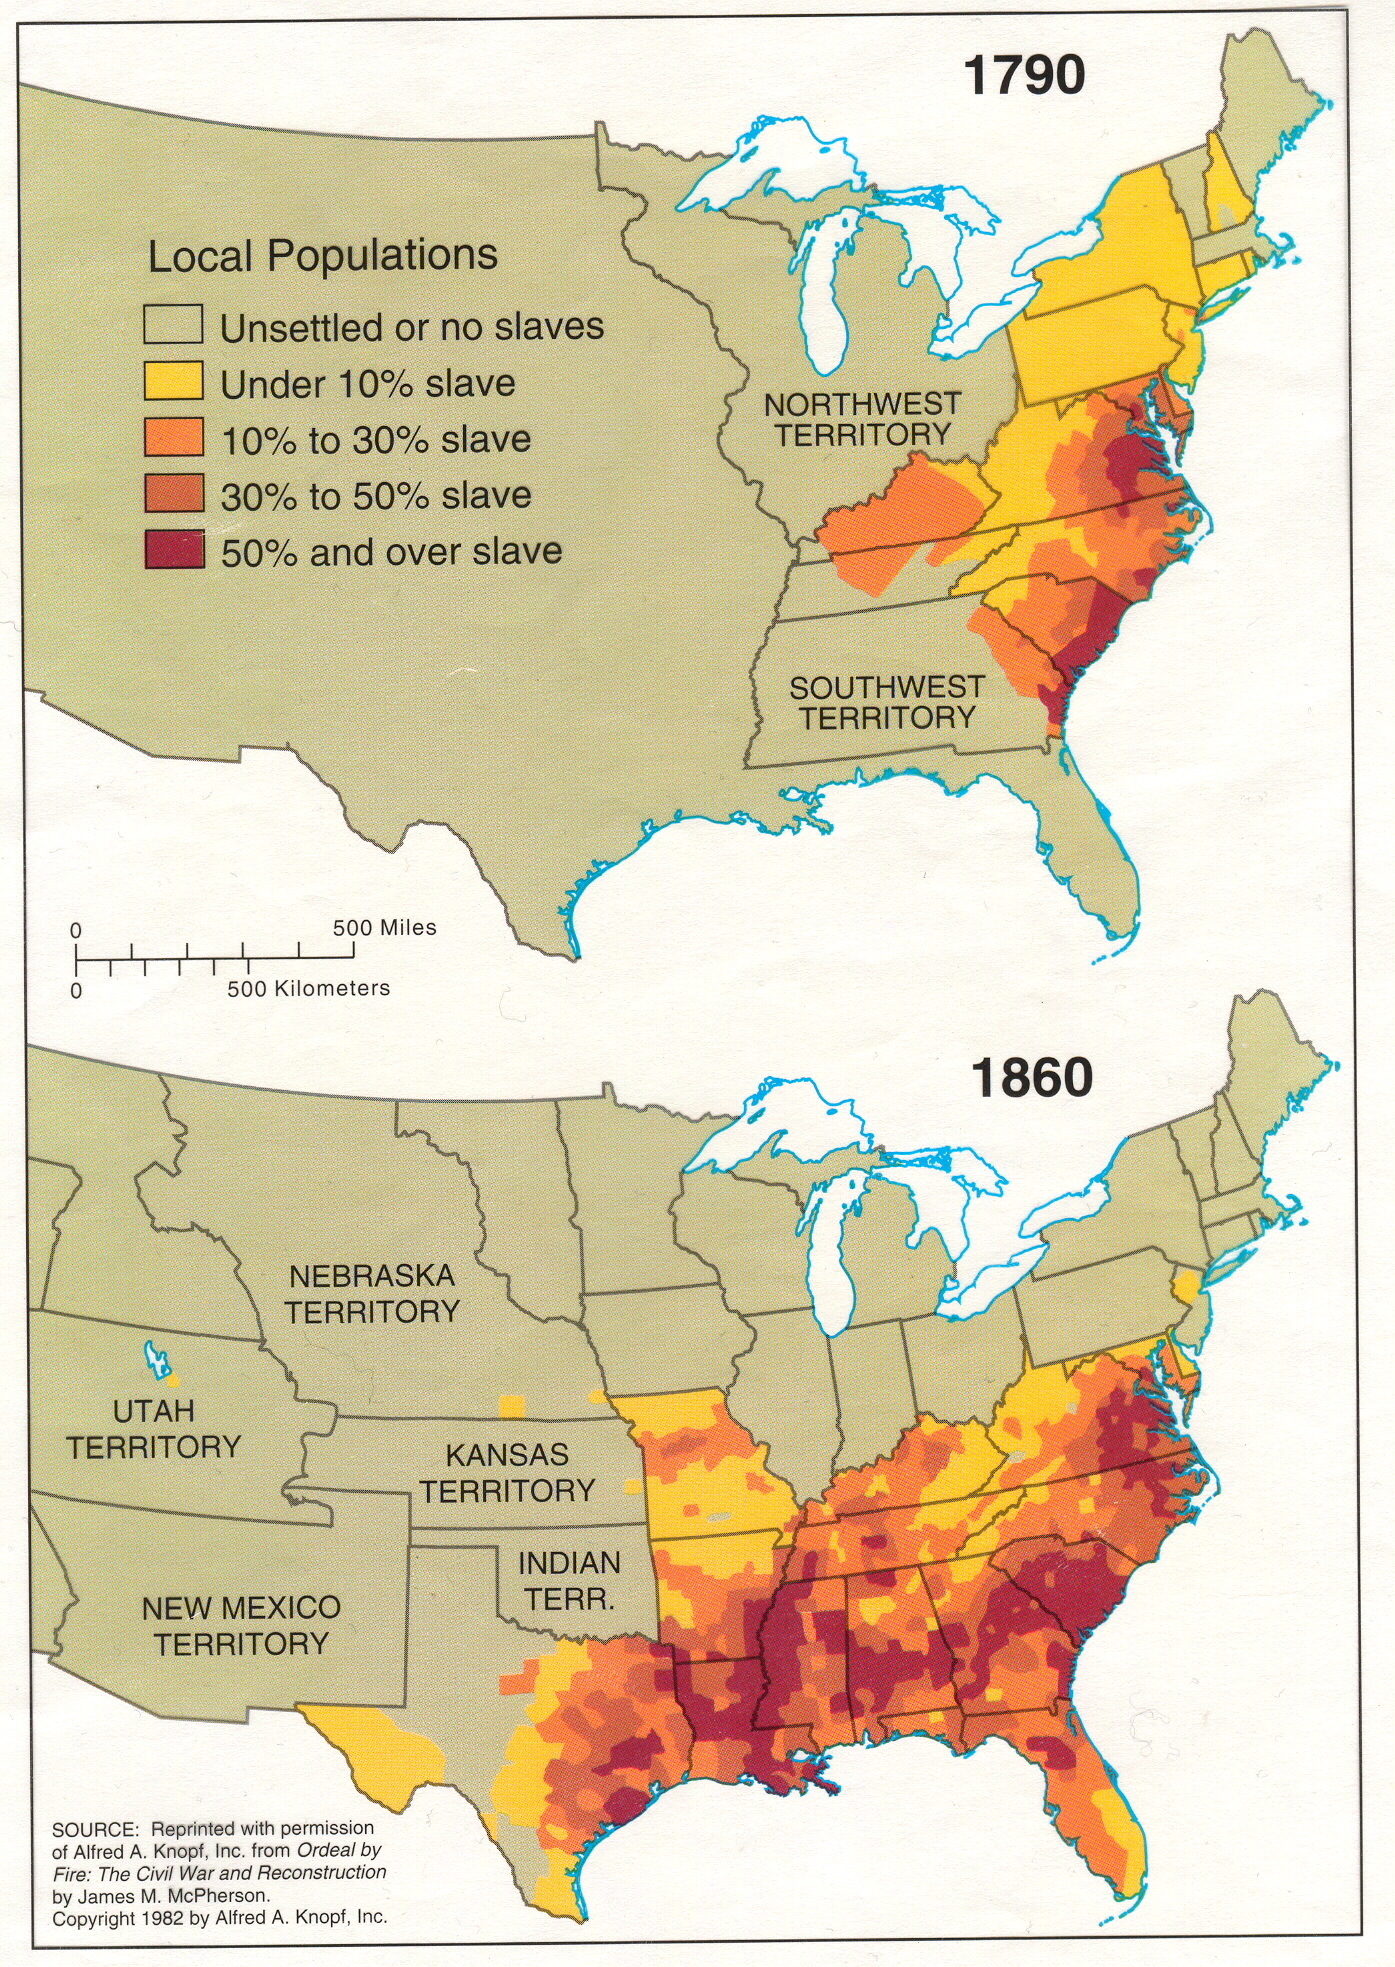 8 grade social studies civil war and reconstruction unit information slavery map cotton